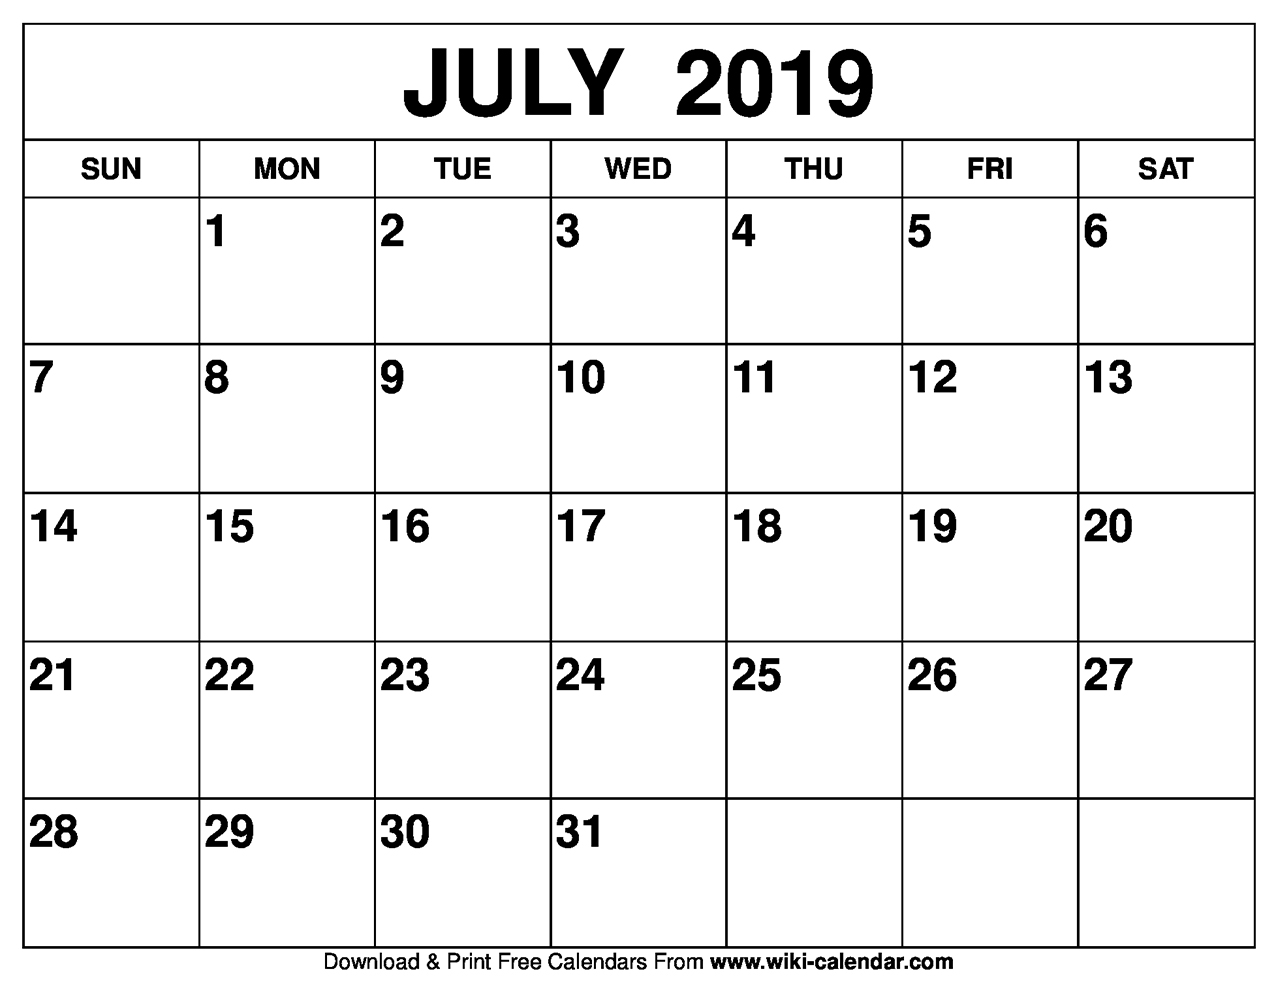 Calendar For July 2019 Blank July 2019 Calendar Printable